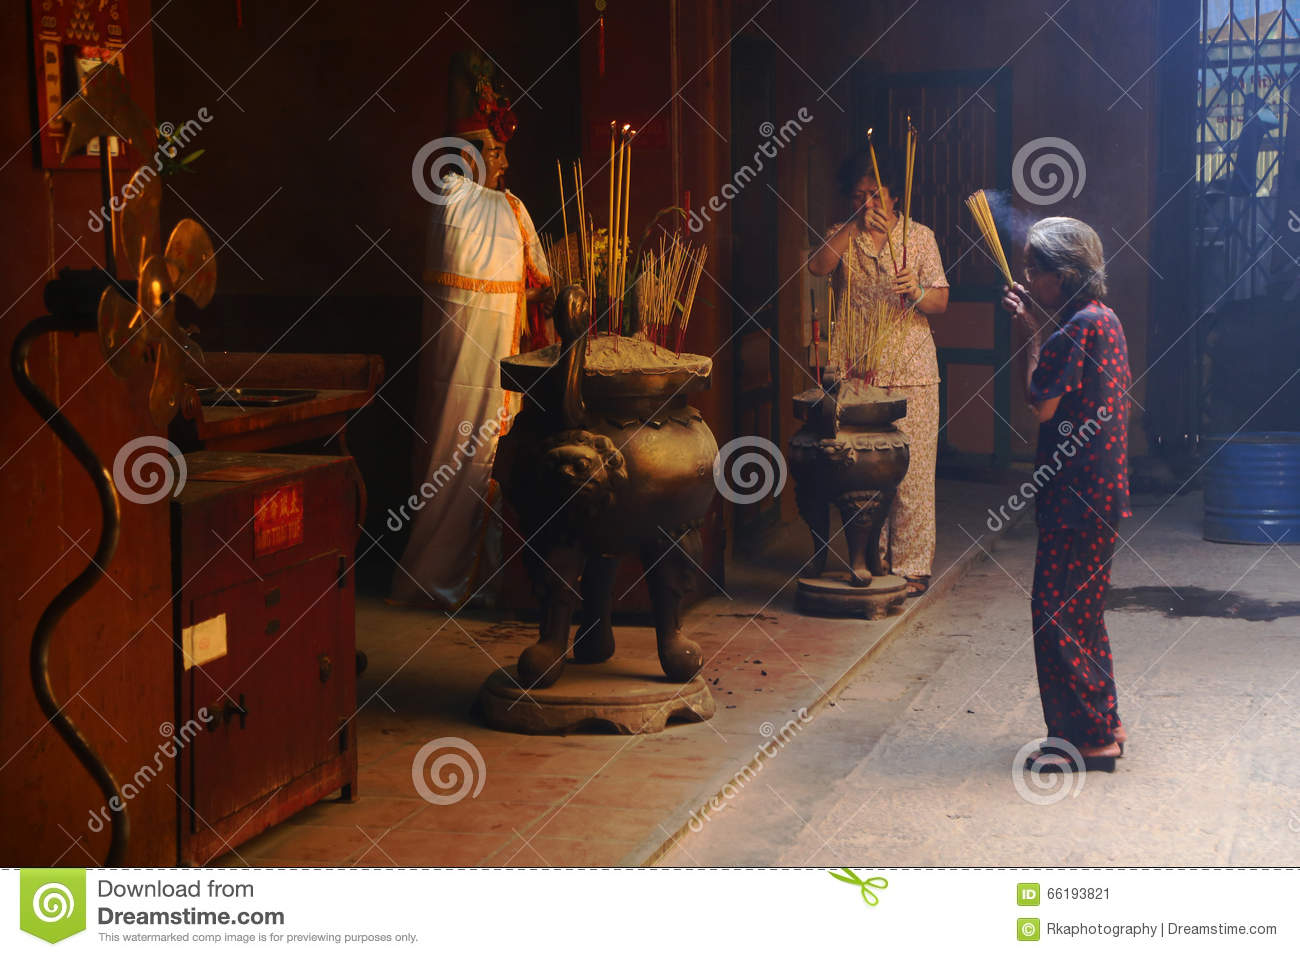 ho chi minh city buddhist personals Ho chi minh city is filled with magnificent buddhist temples, some dating back centuries, others much, much younger some are large whereas others are small.